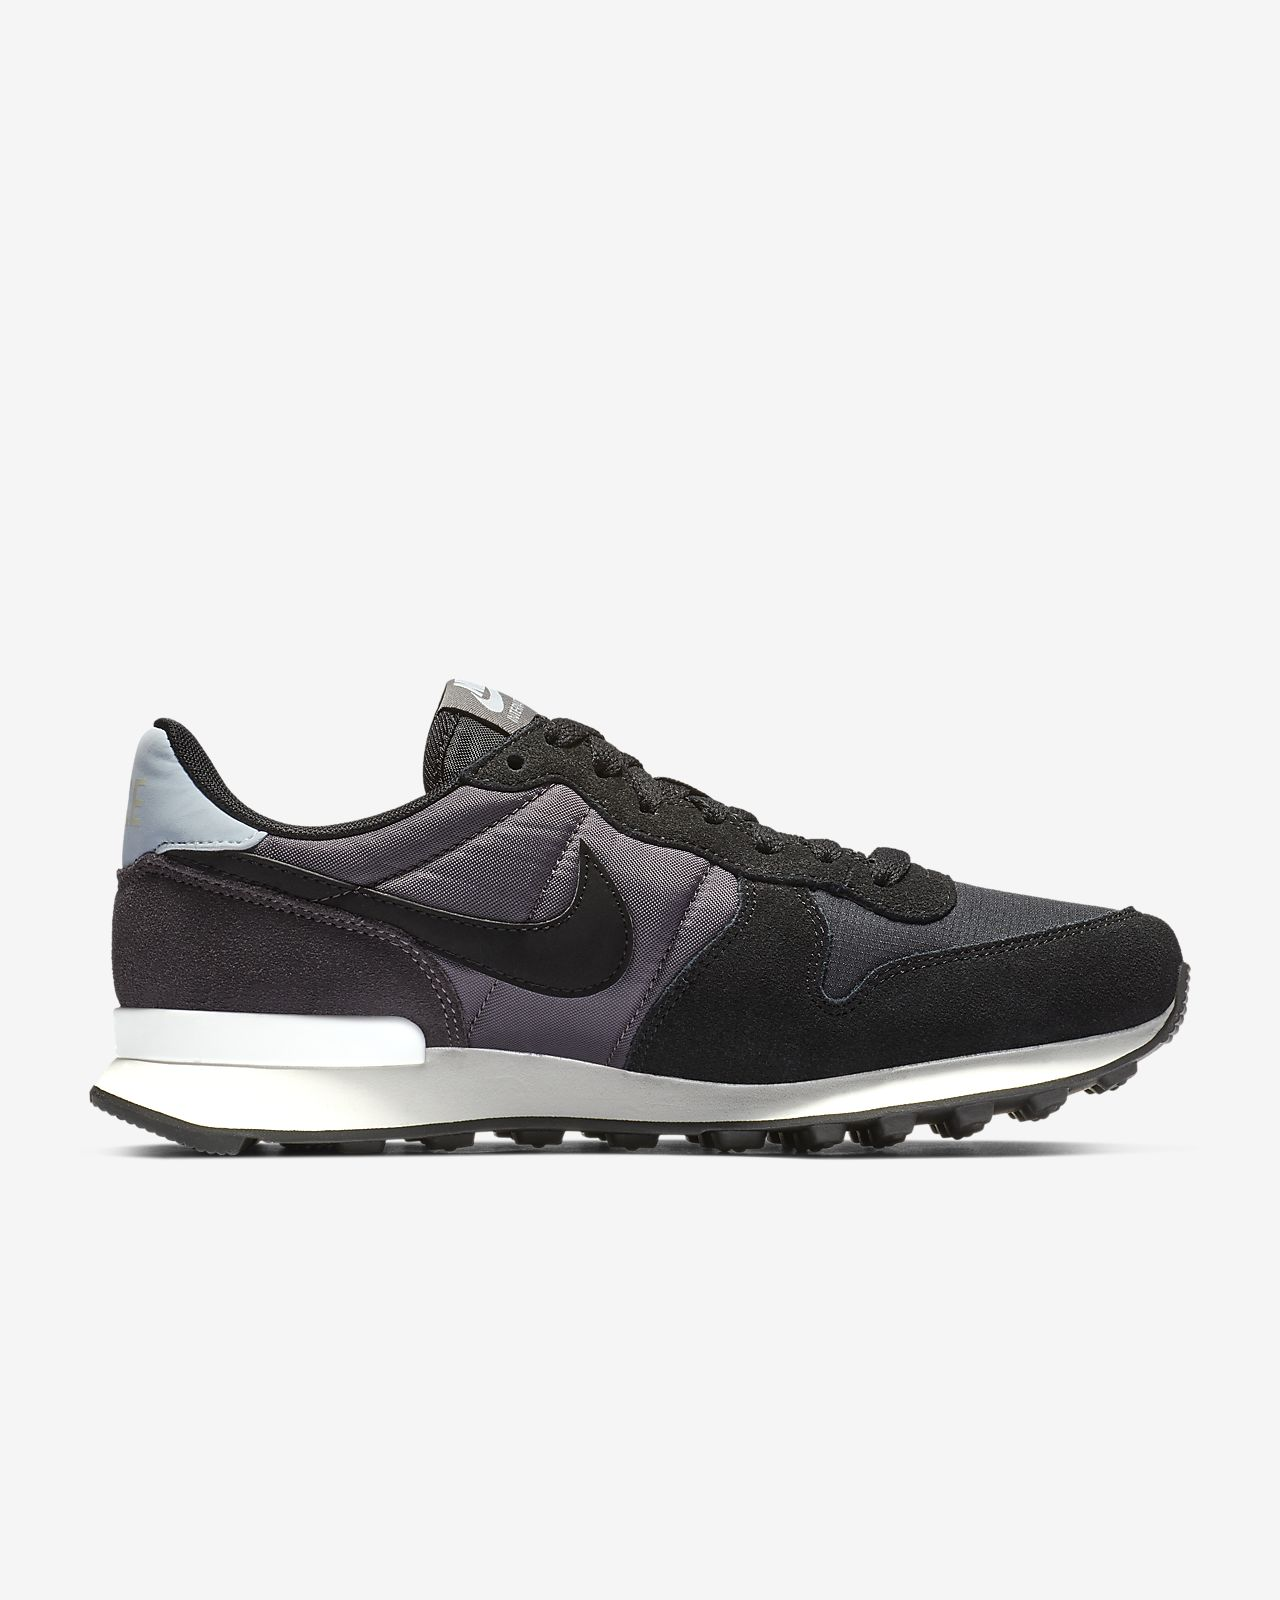 brand new 4e8ab c8445 Low Resolution Chaussure Nike Internationalist pour Femme Chaussure Nike  Internationalist pour Femme